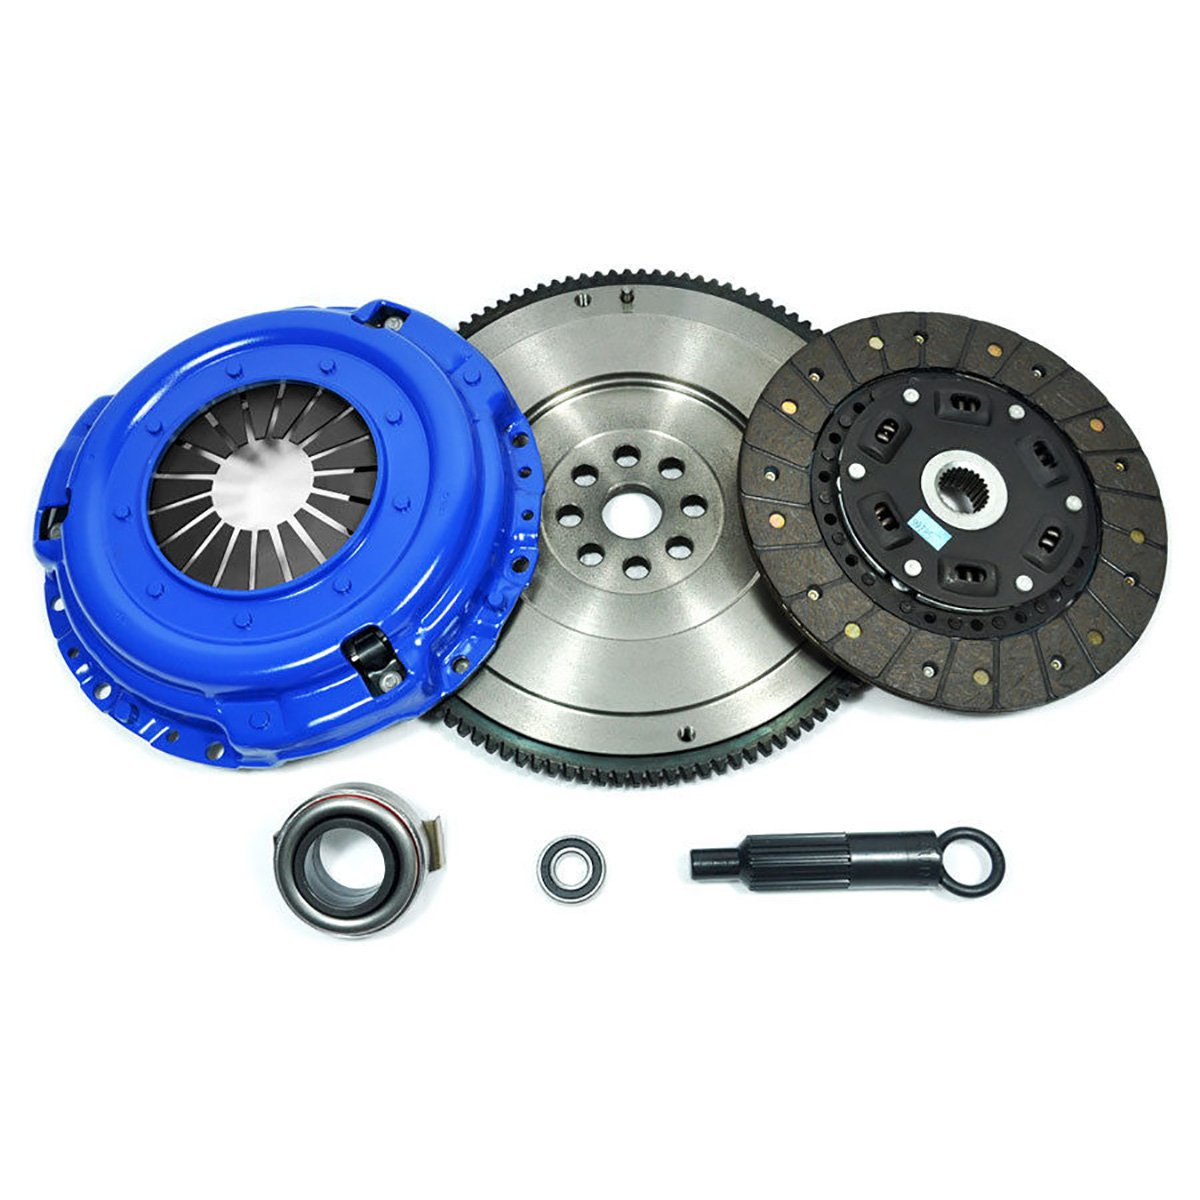 PPC SPORT 2 CLUTCH KIT AND FLYWHEEL FOR ACURA INTEGRA B16 B18 B20 HYDRO TRANS EFORTISSIMO